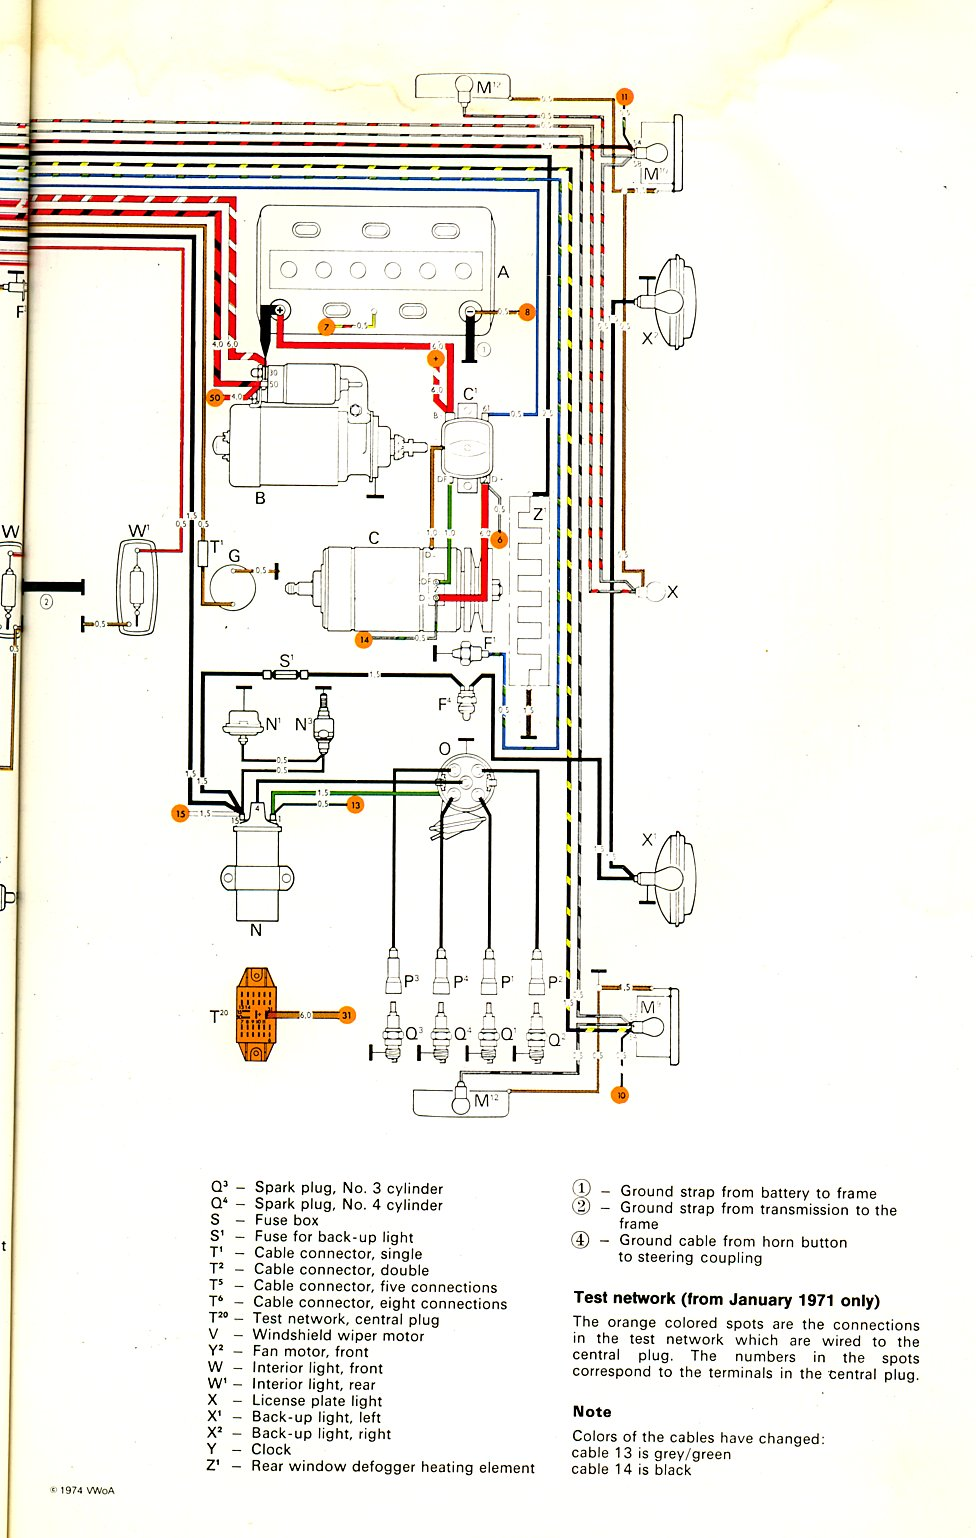 Camper Trailer Battery Wiring Diagram 1971 Trusted Diagrams 12 Volt 2 System Thesamba Com Type Rh Challenger On Rv